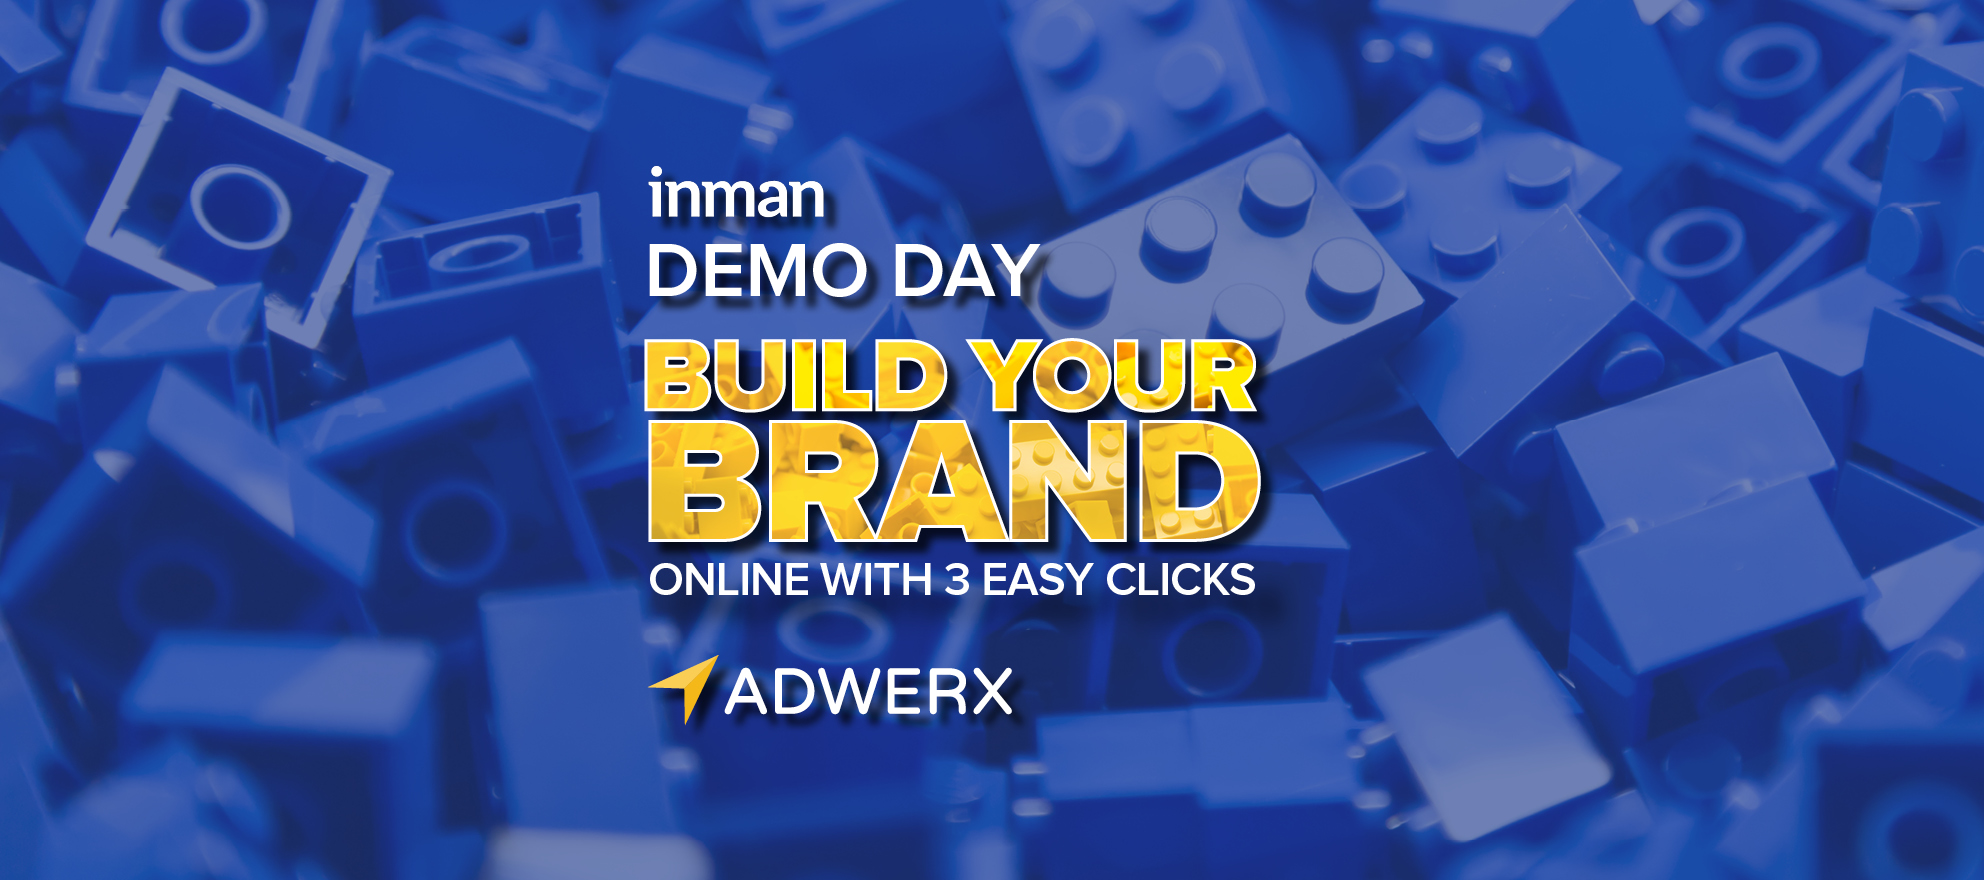 Build your brand online with 3 easy clicks using Adwerx